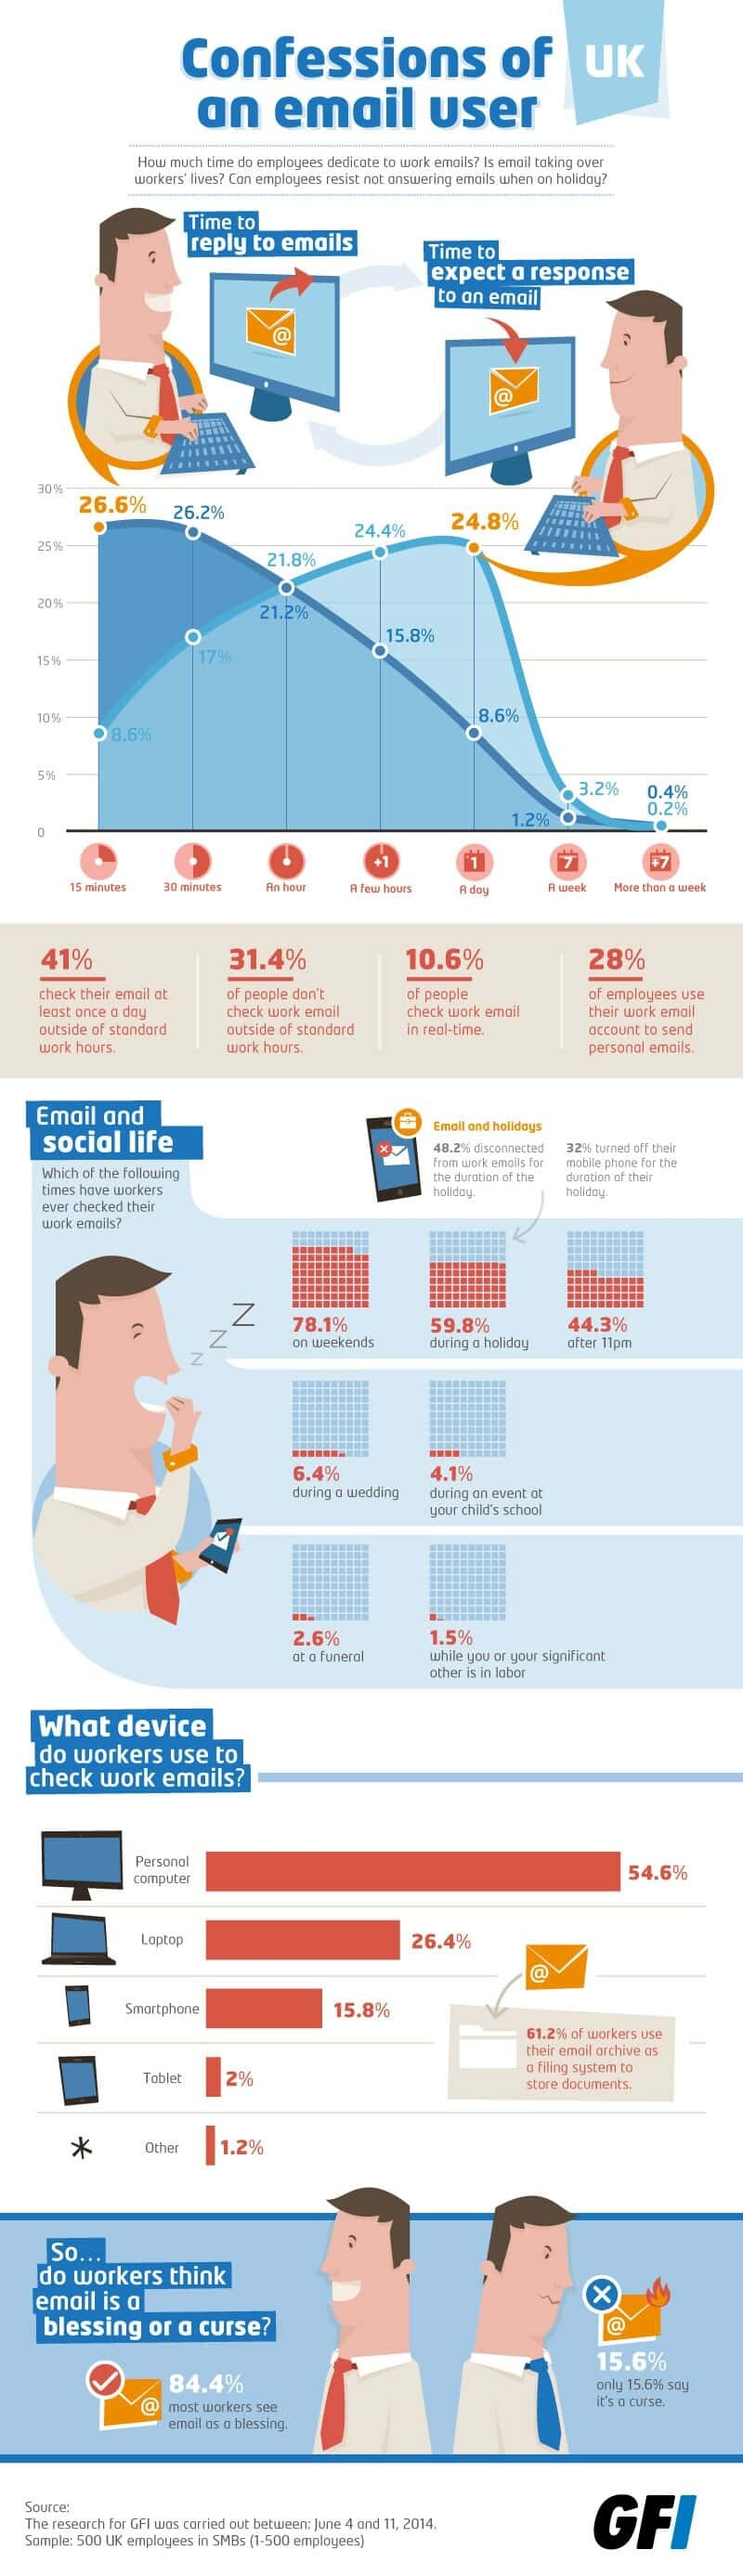 Infographic about email usage